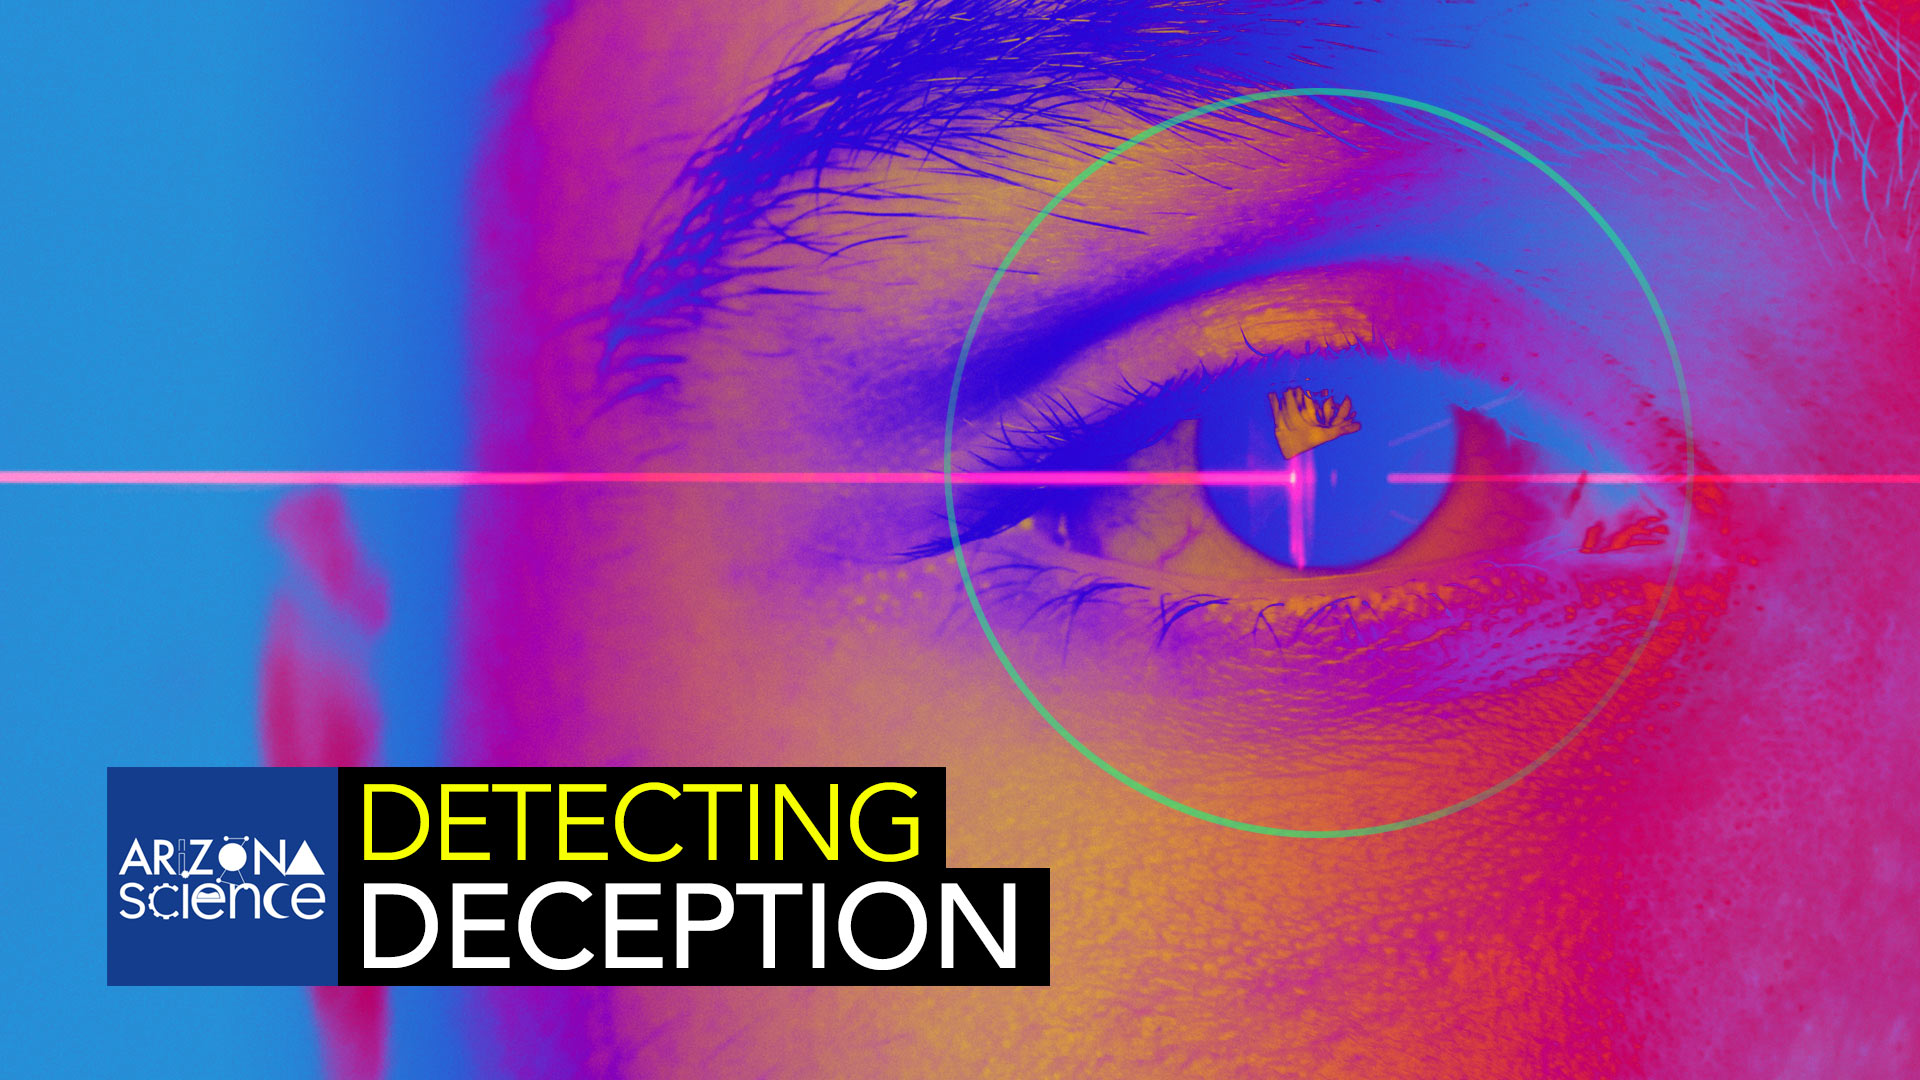 University of Arizona professor Jay Nunamaker is leading a team of scientists developing new technology to help detect lies.